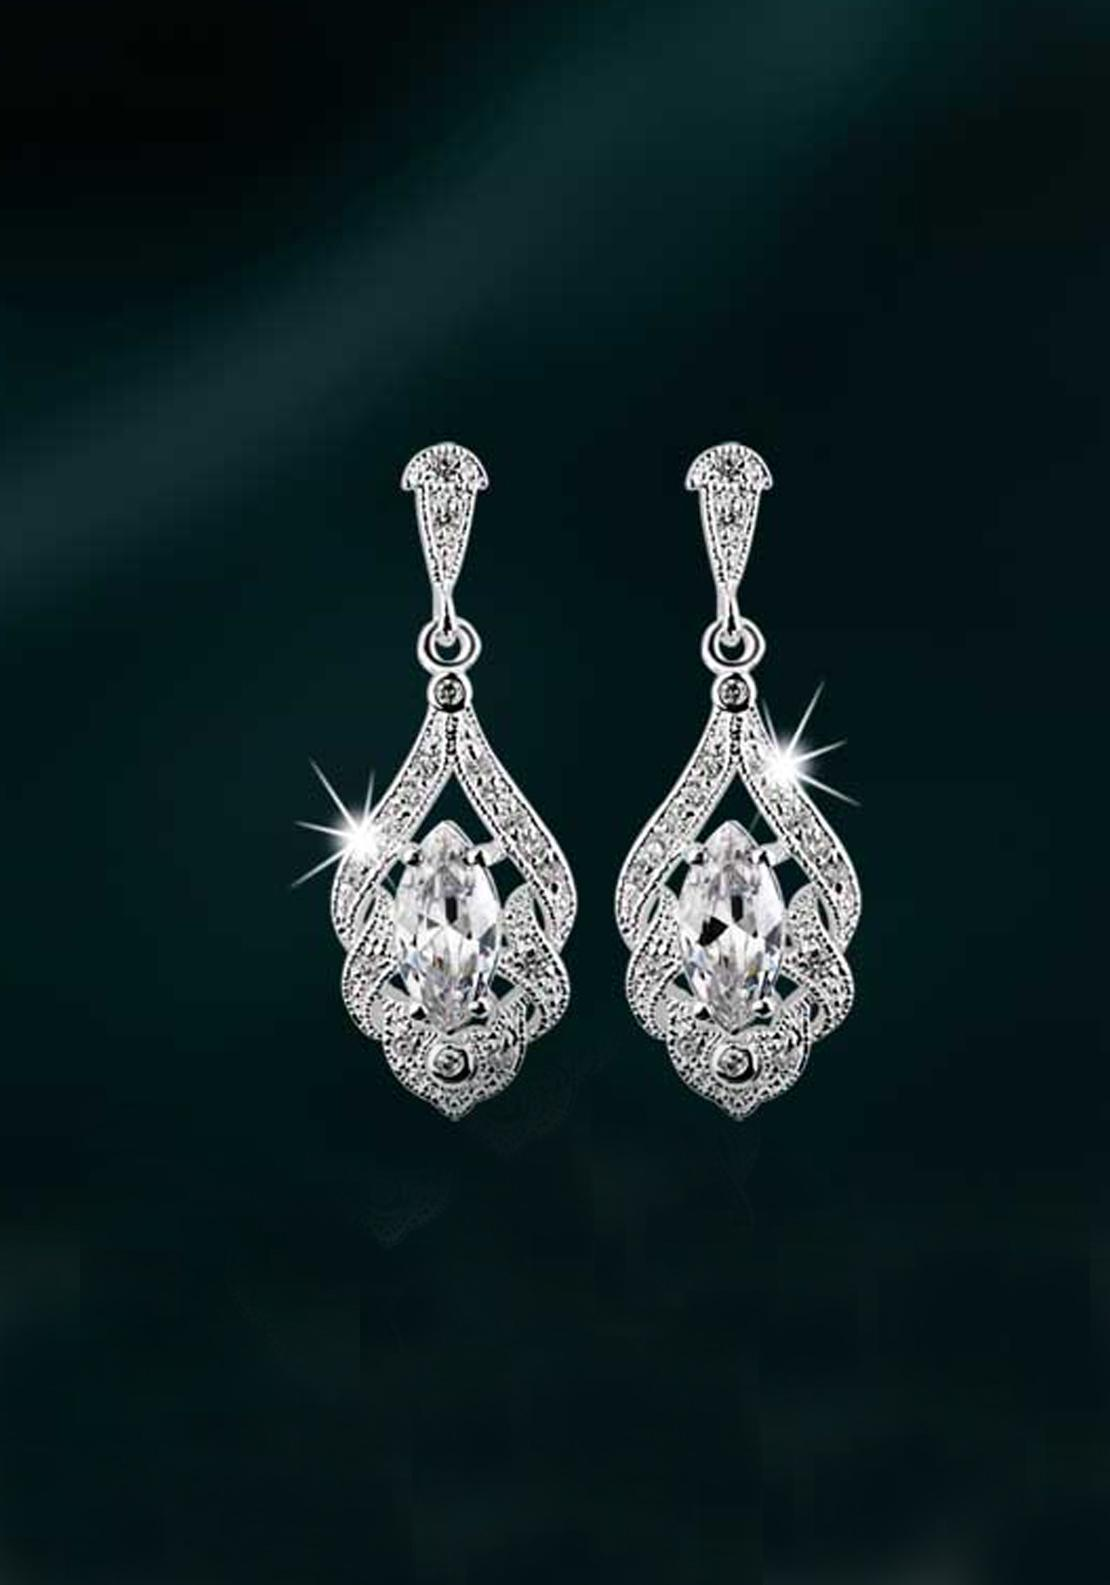 Newbridge Maureen O'Hara Drop Crystal Earrings, Silver / Clear